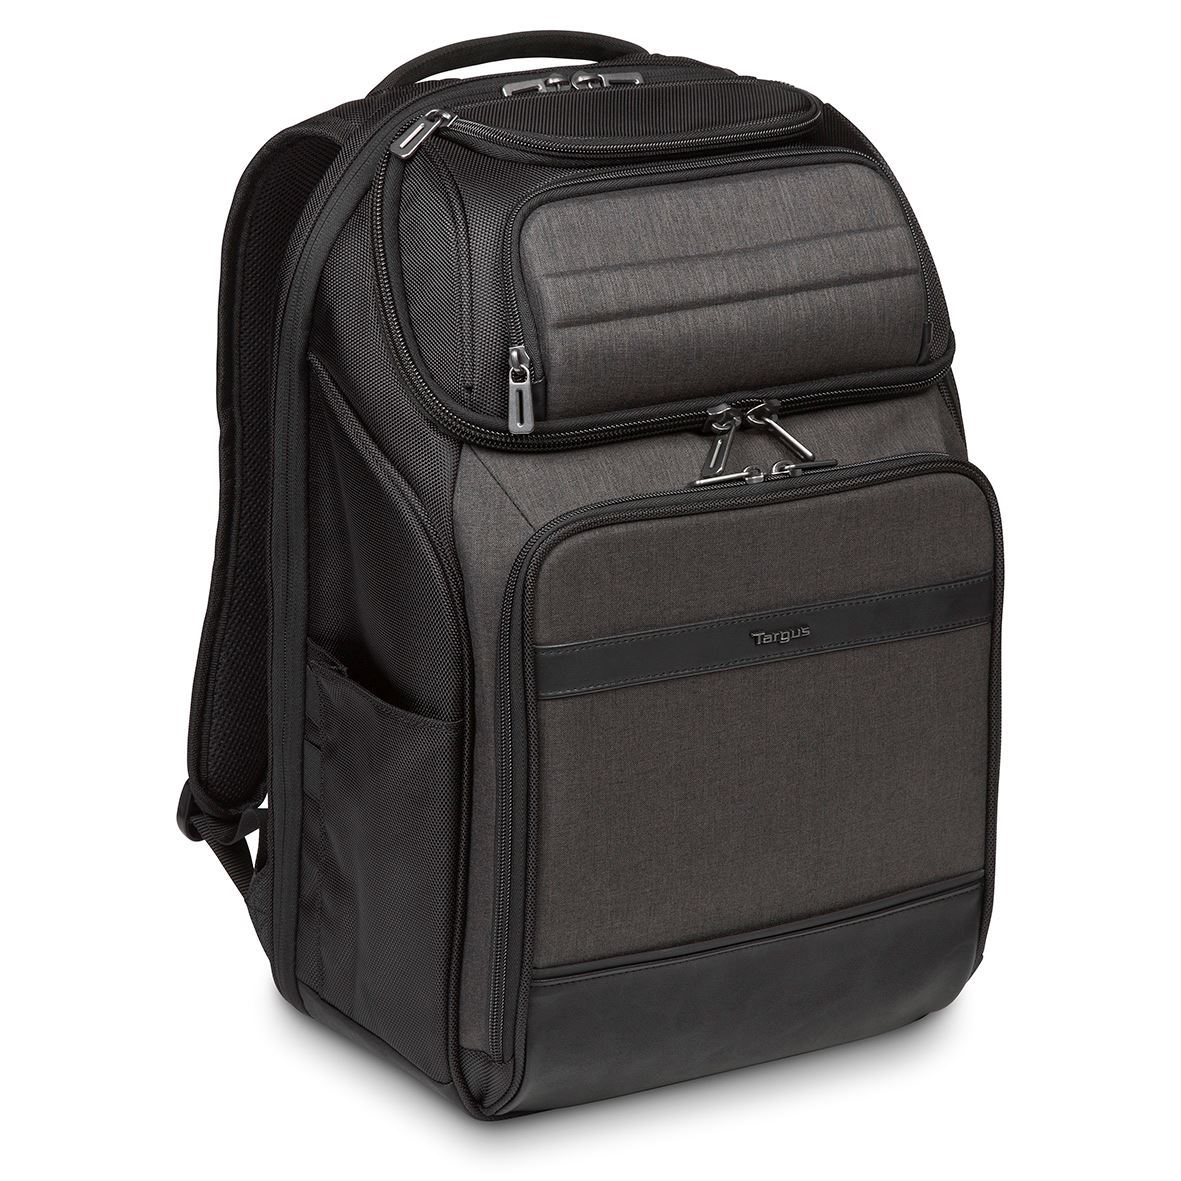 Picture Of CitySmart 125 13 133 14 15 156 Professional Laptop Backpack